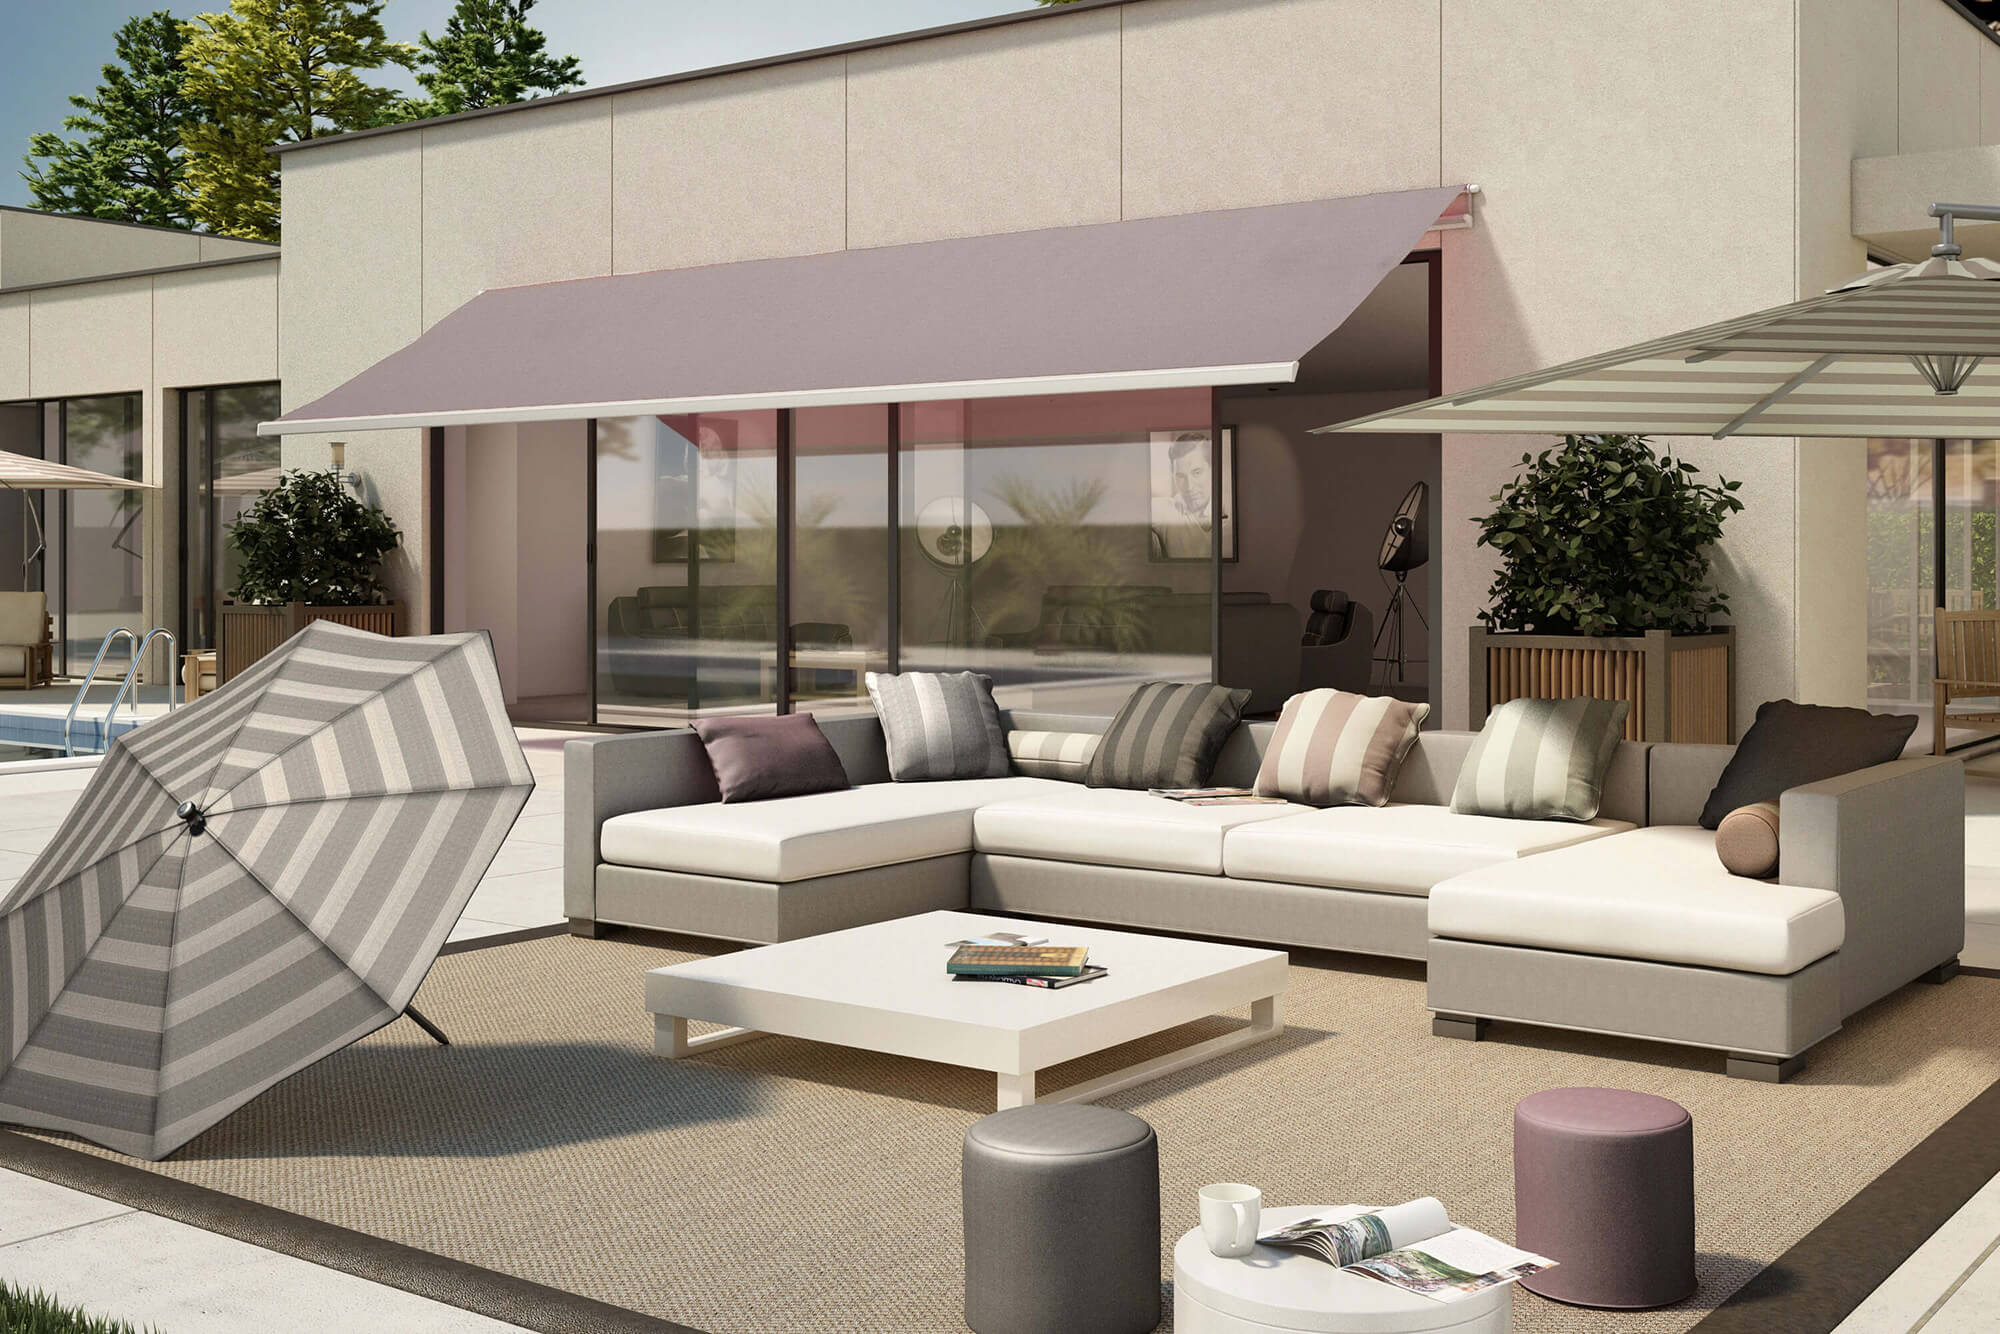 Patio con muebles de exteriores, toldo y sombrillas